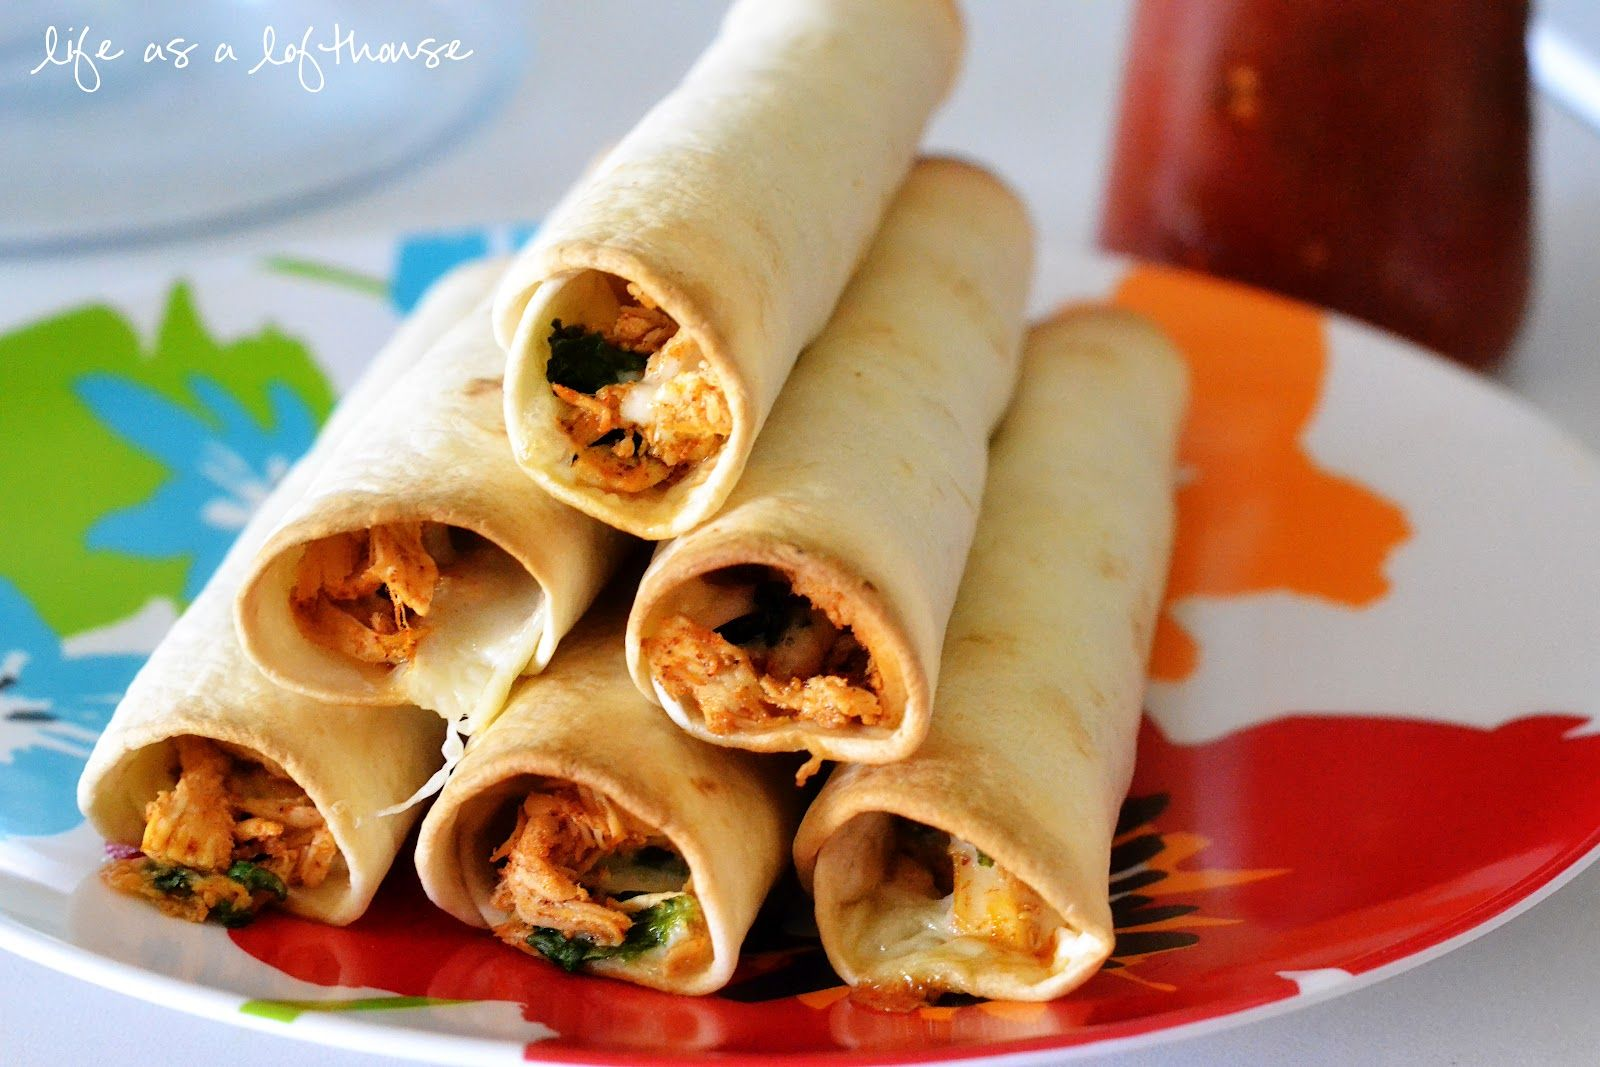 Life as a Lofthouse (Food Blog): Baked Chicken and Spinach Flautas